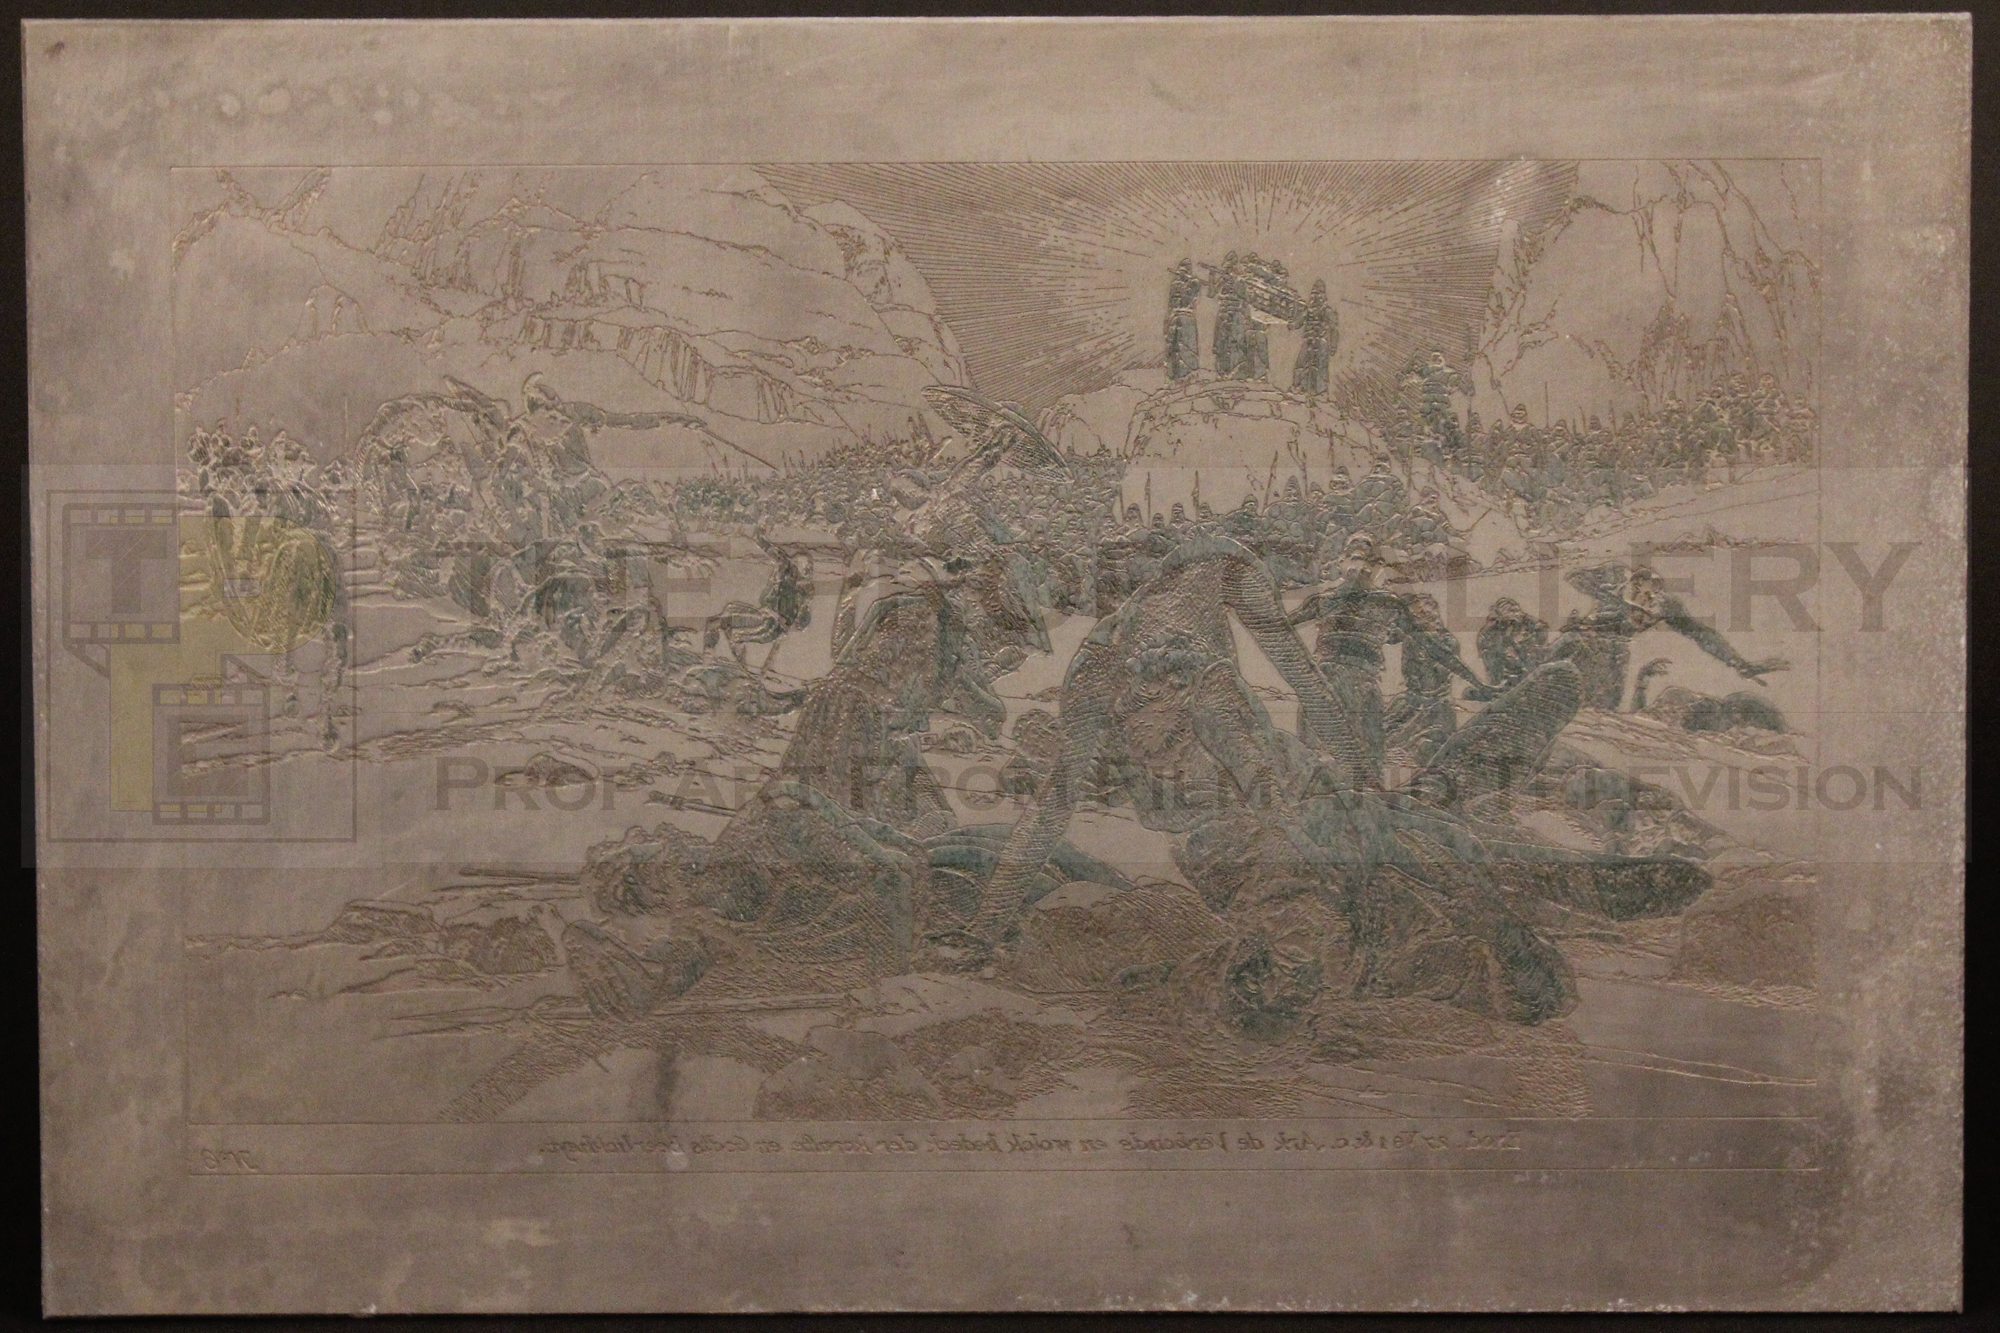 Original Ark of the Covenant etching created by Ralph McQuarrie during the production of Raiders of the Lost Ark.